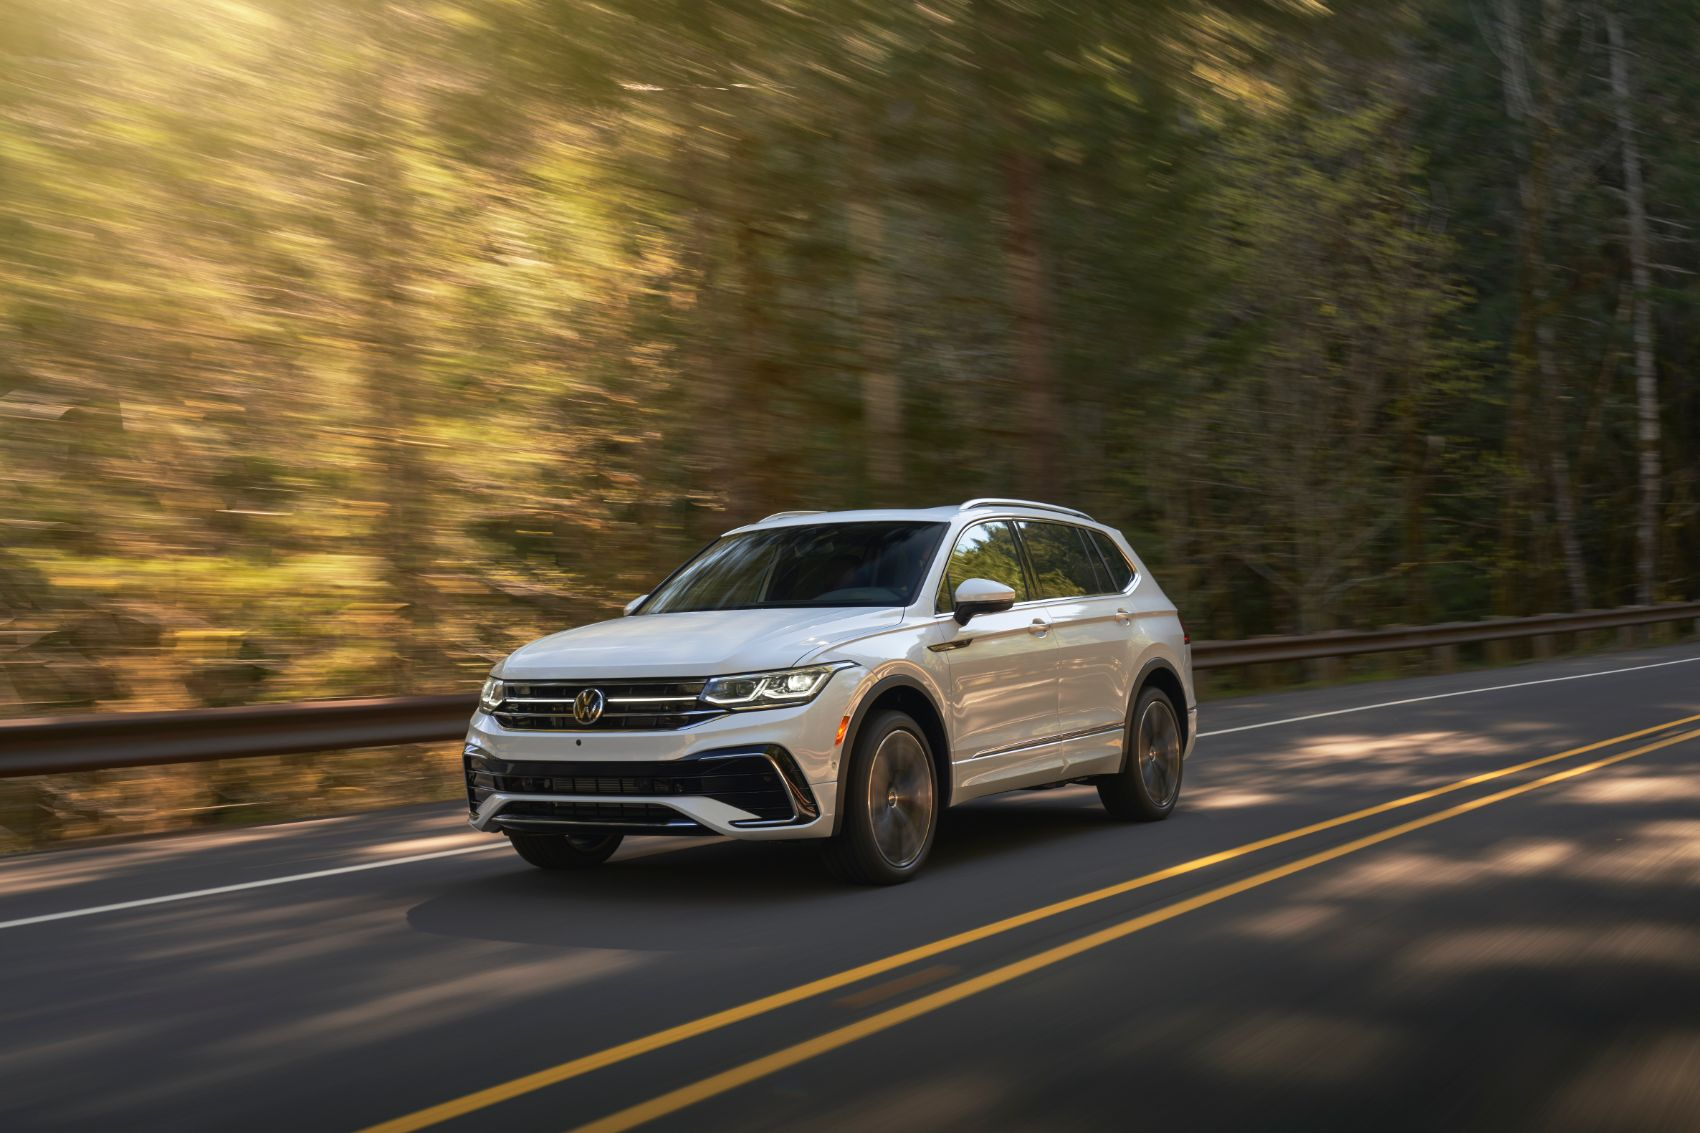 2022 Volkswagen Tiguan Video Tutorial Hosted by a VW Executive